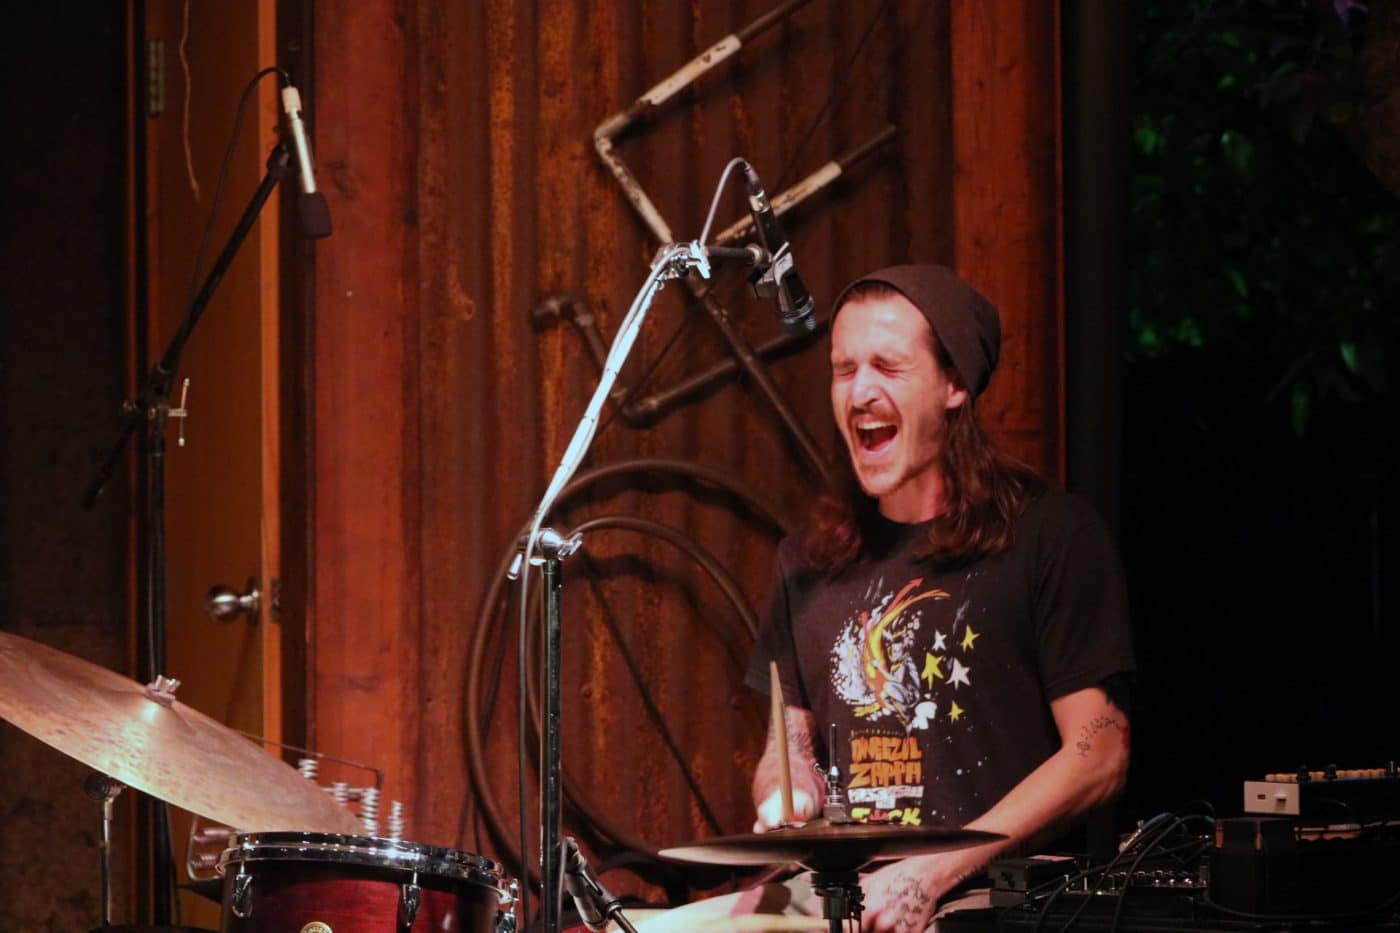 Adam Morford performs with his band Tallgrass